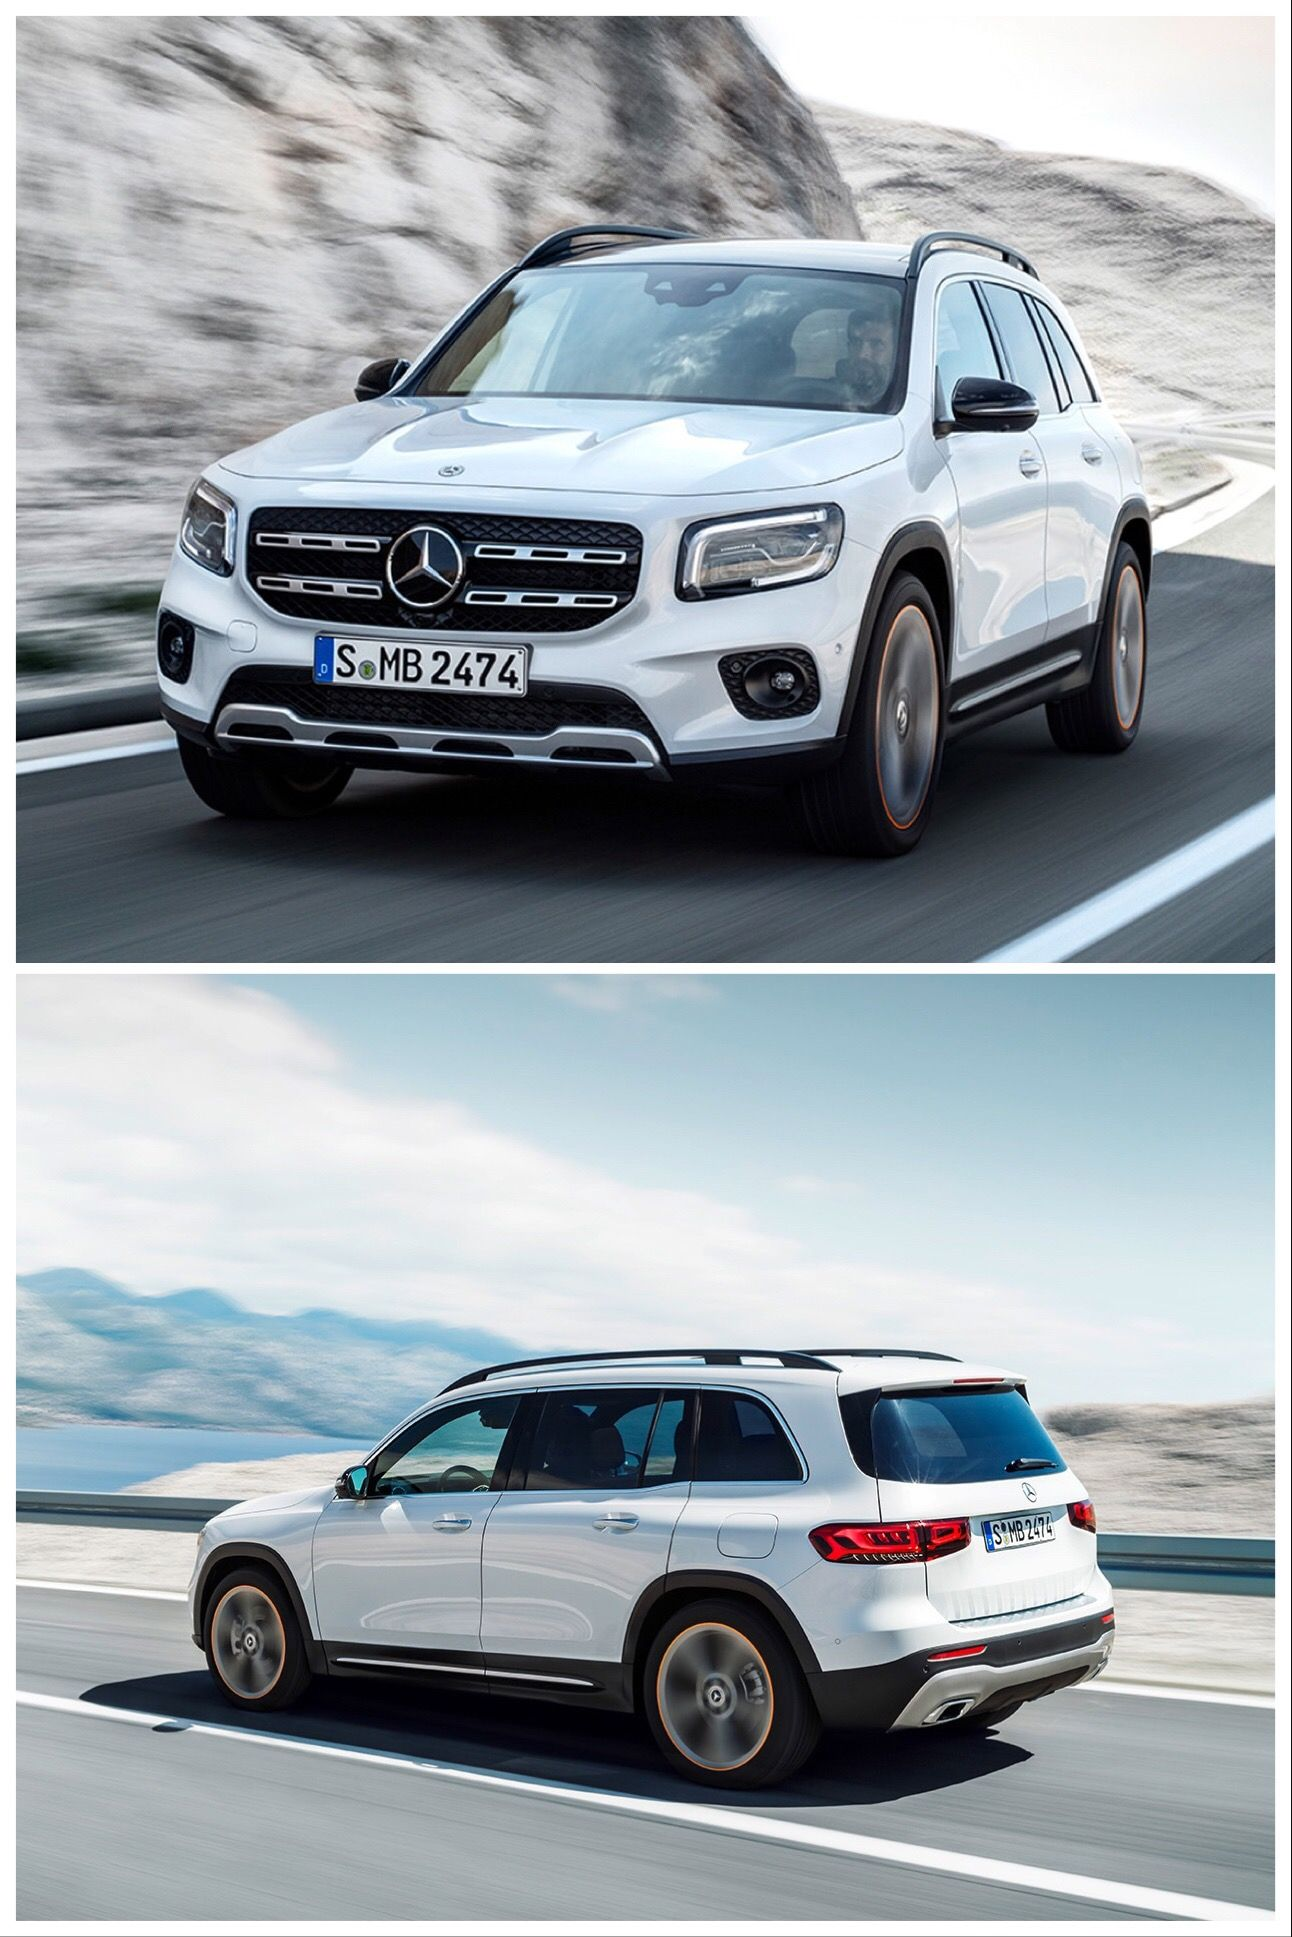 2020 Mercedes Benz Glb250 Photos And Info It S Juuuust Right